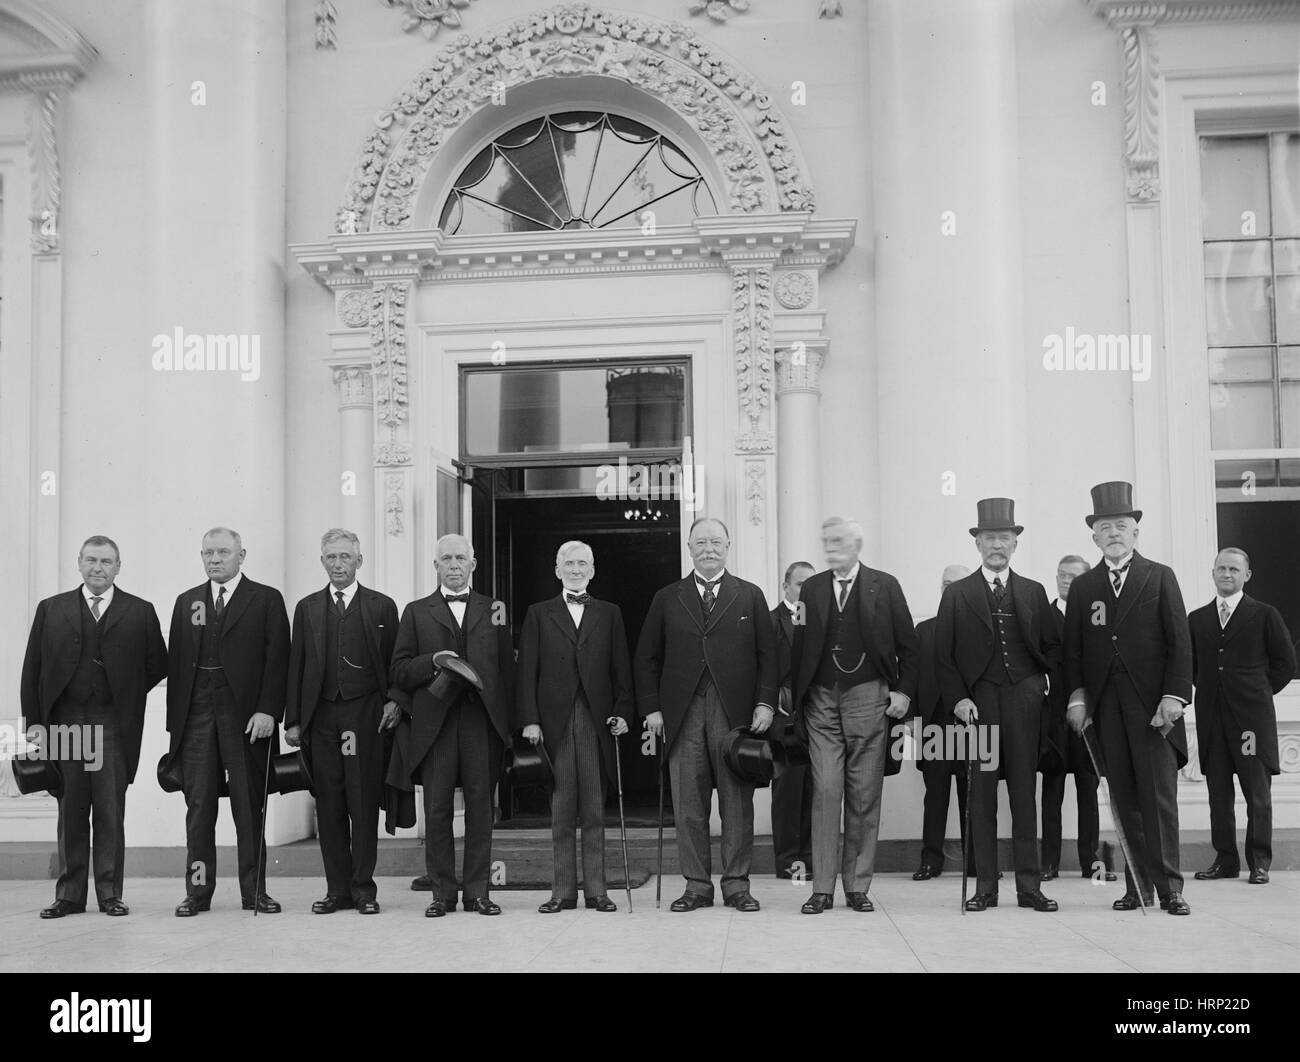 United States Supreme Court Justices, 1924 - Stock Image